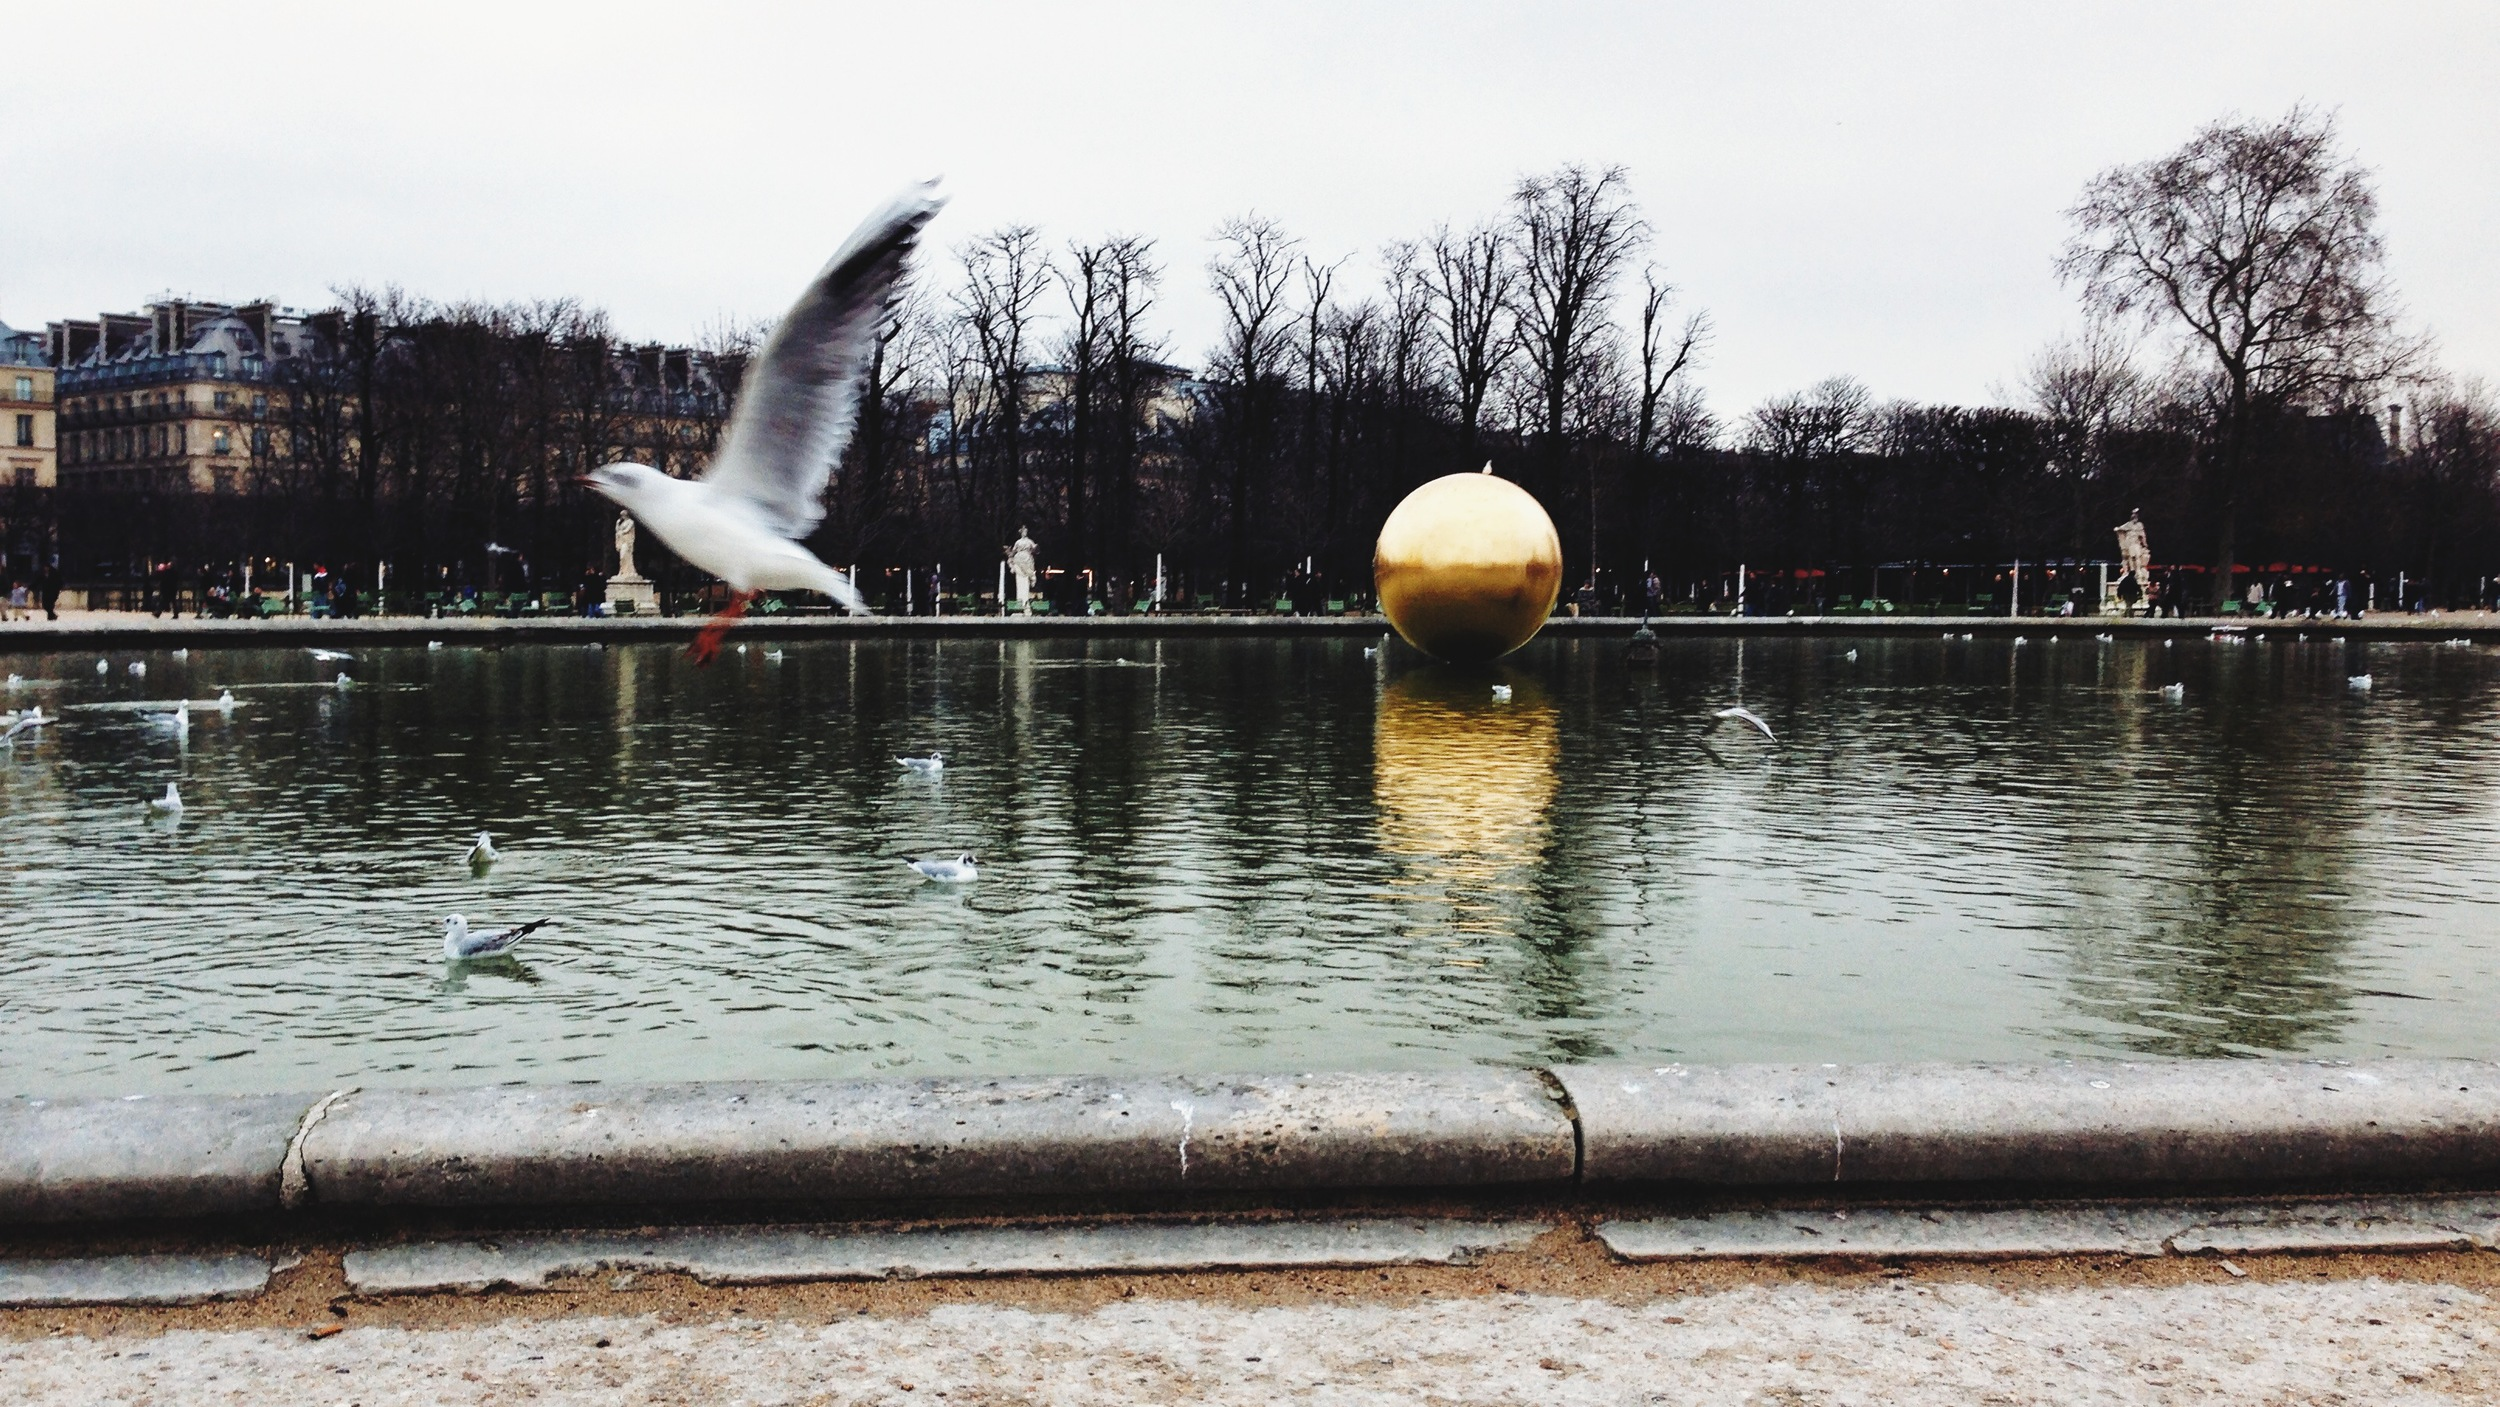 Taking flight at the Jardin des Tuileries